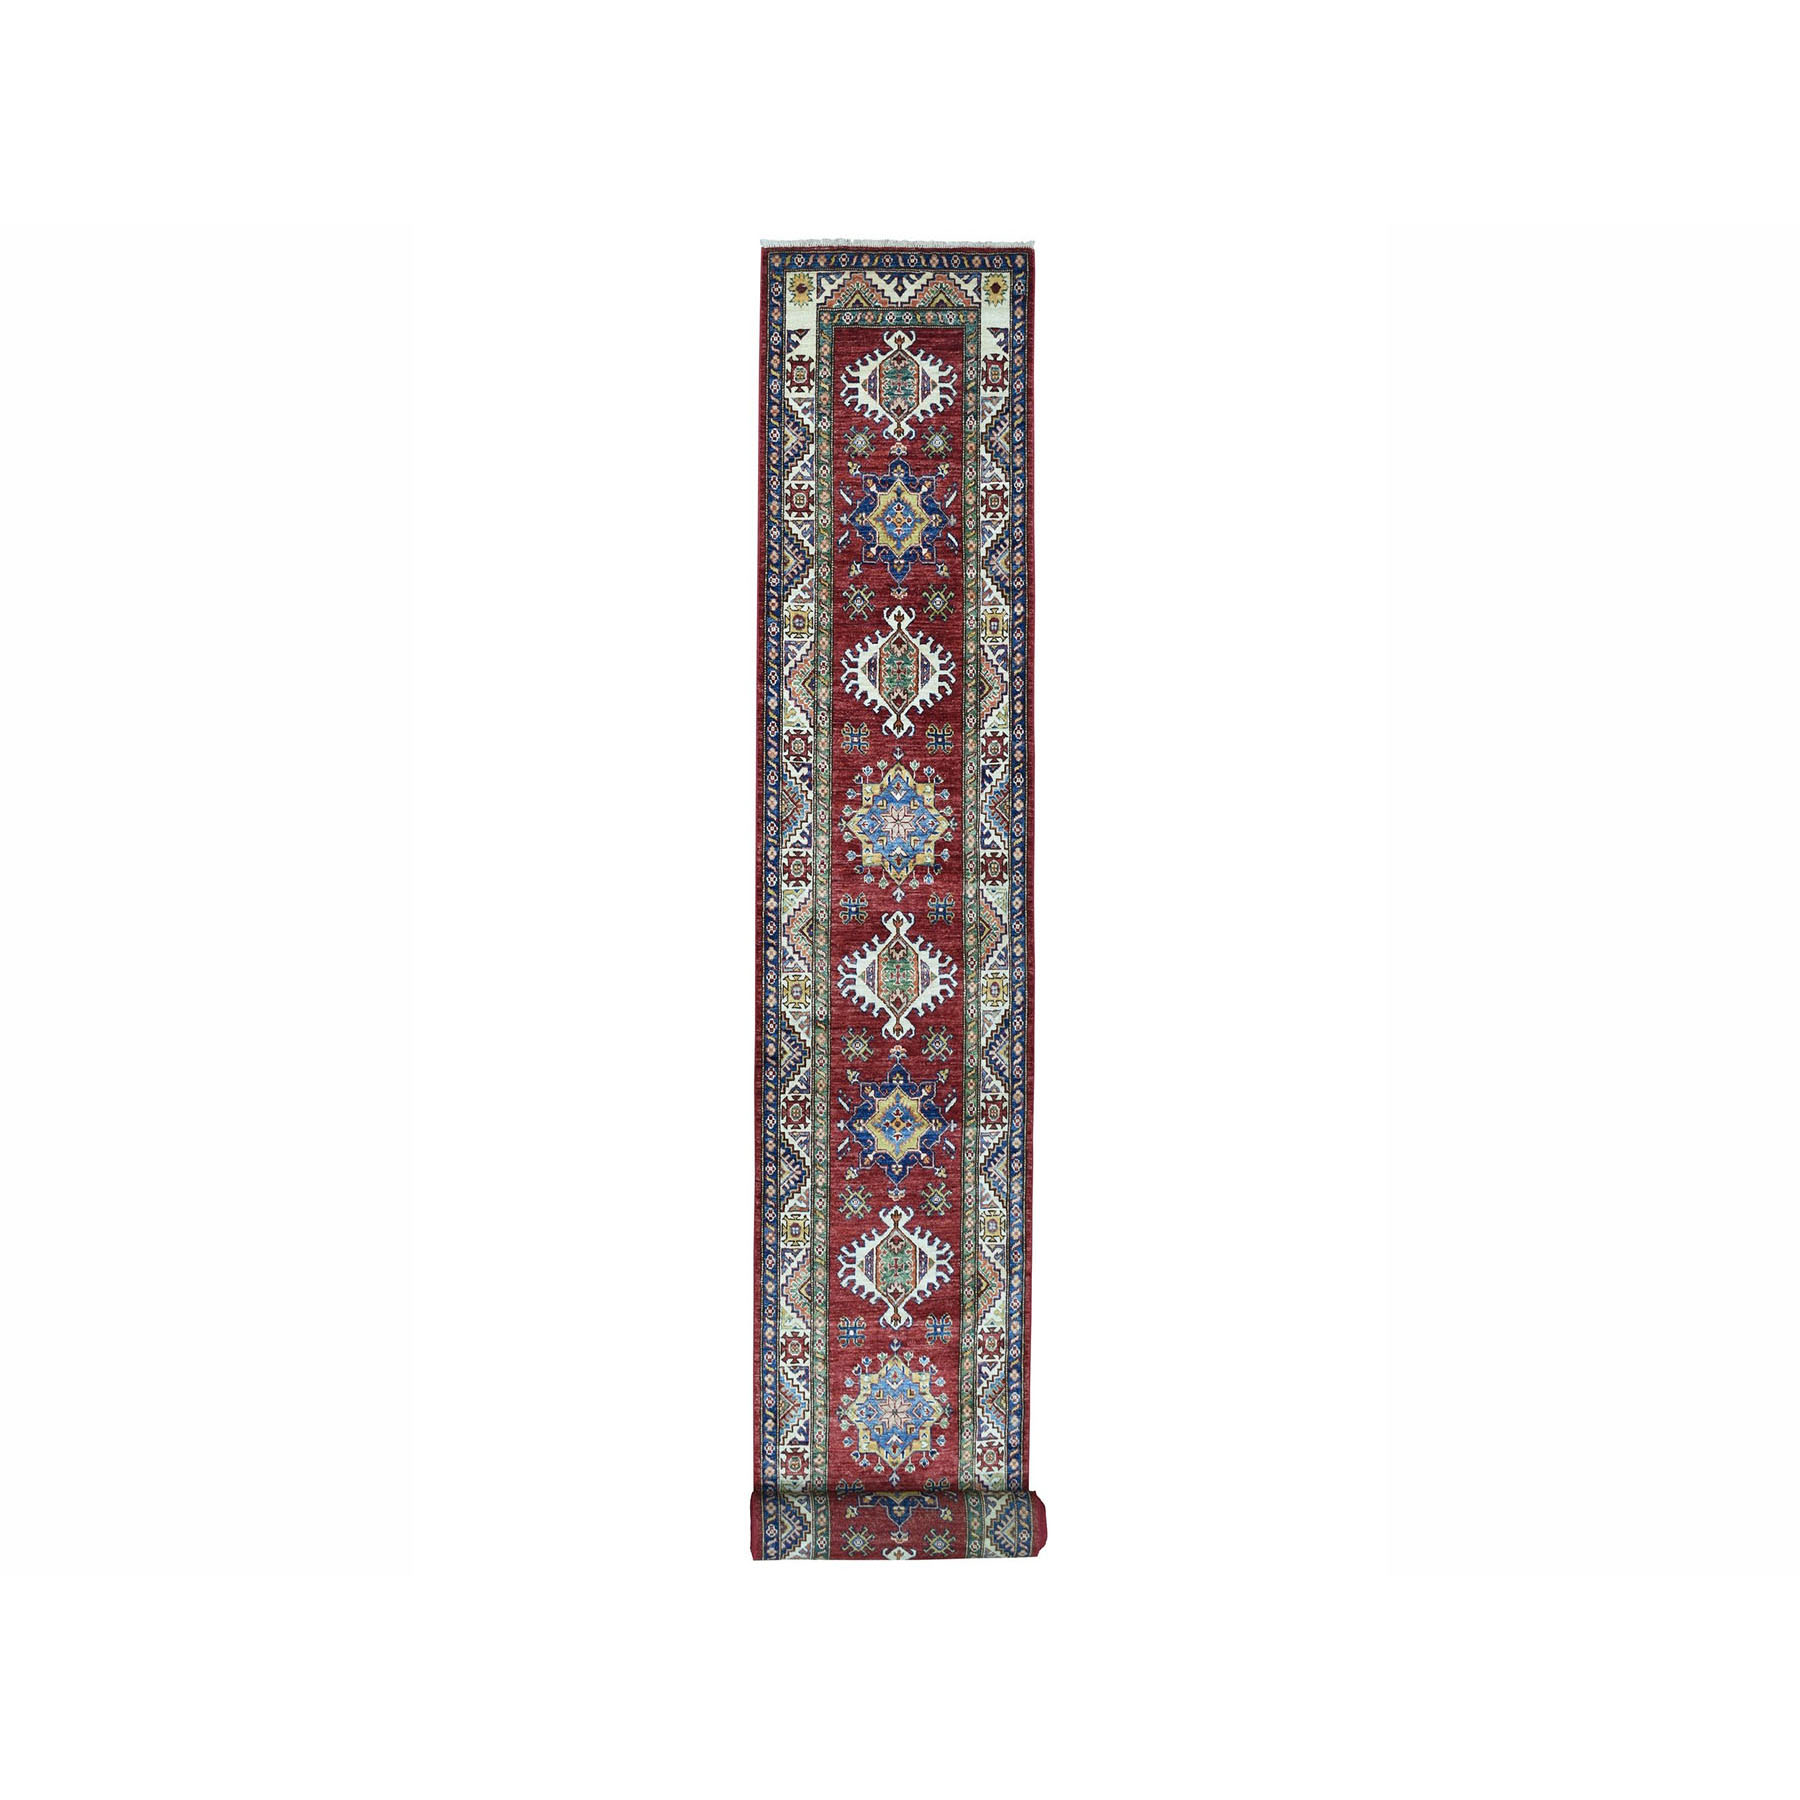 "2'8""X19'3"" Super Kazak Red Geometric Design Pure Wool Hand-Knotted Xl Runner Oriental Rug moae00bd"